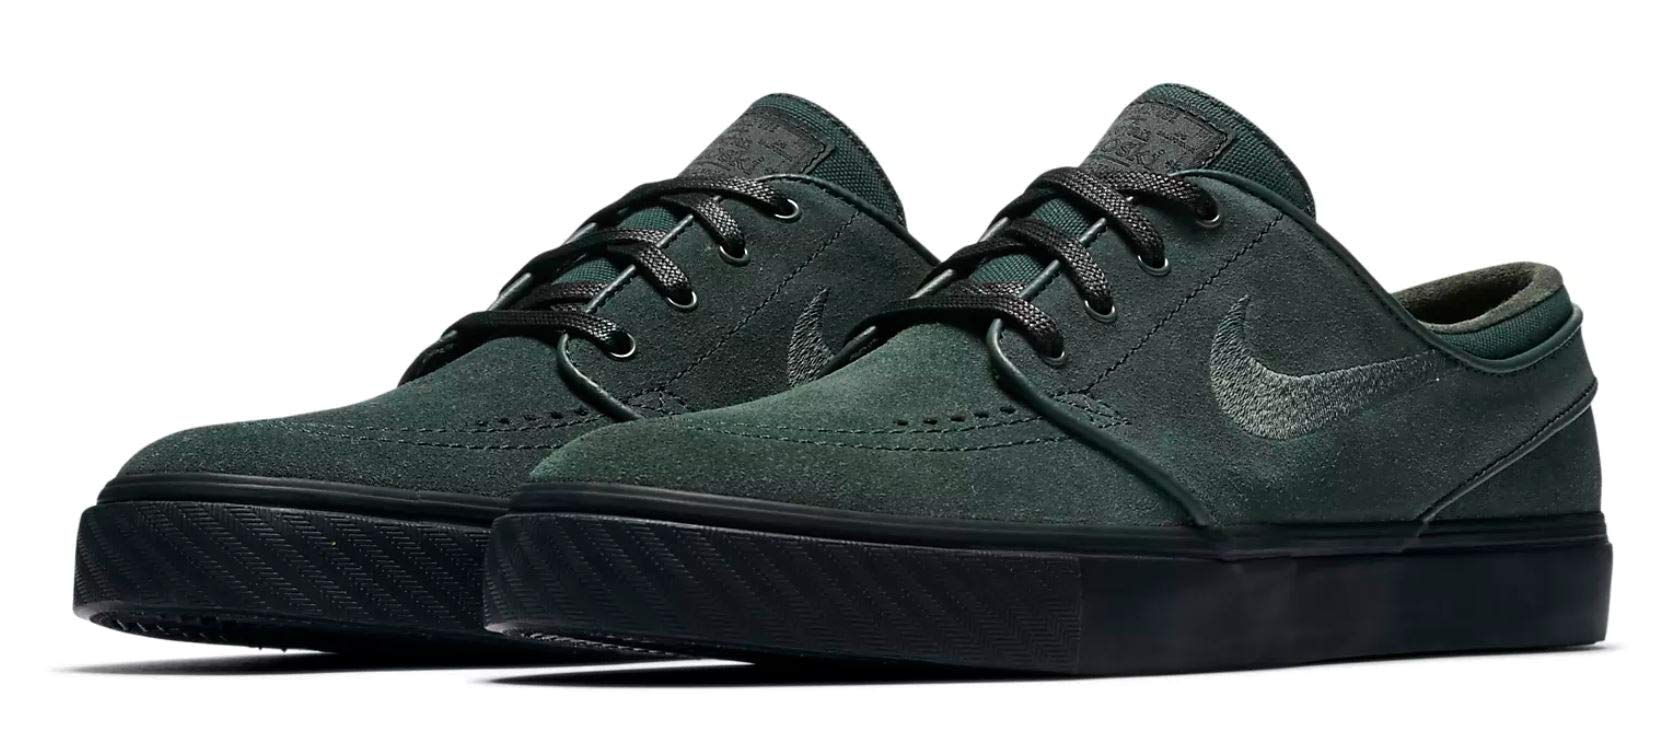 cheaper c5b70 abdf8 Galleon - Nike Men s Zoom Stefan Janoski Skateboarding Shoes (Midnight  Green Midnight Green, 11.5 D(M) US)